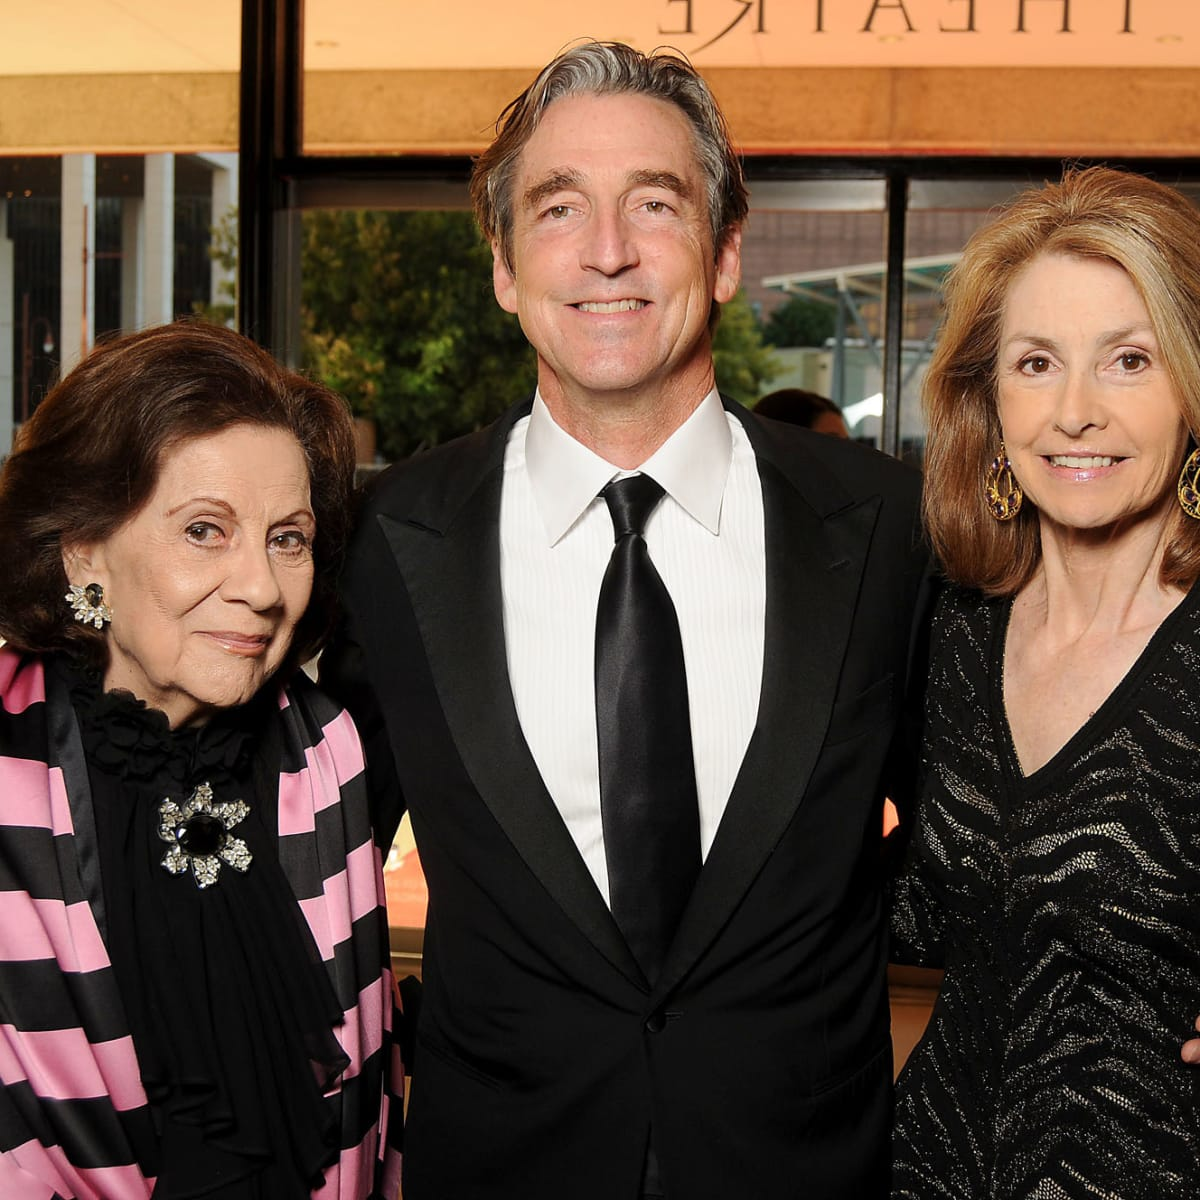 News, Shelby, Alley Theatre opening, September 2015, Patty Hubbard, Ford and Mollie Hubbard